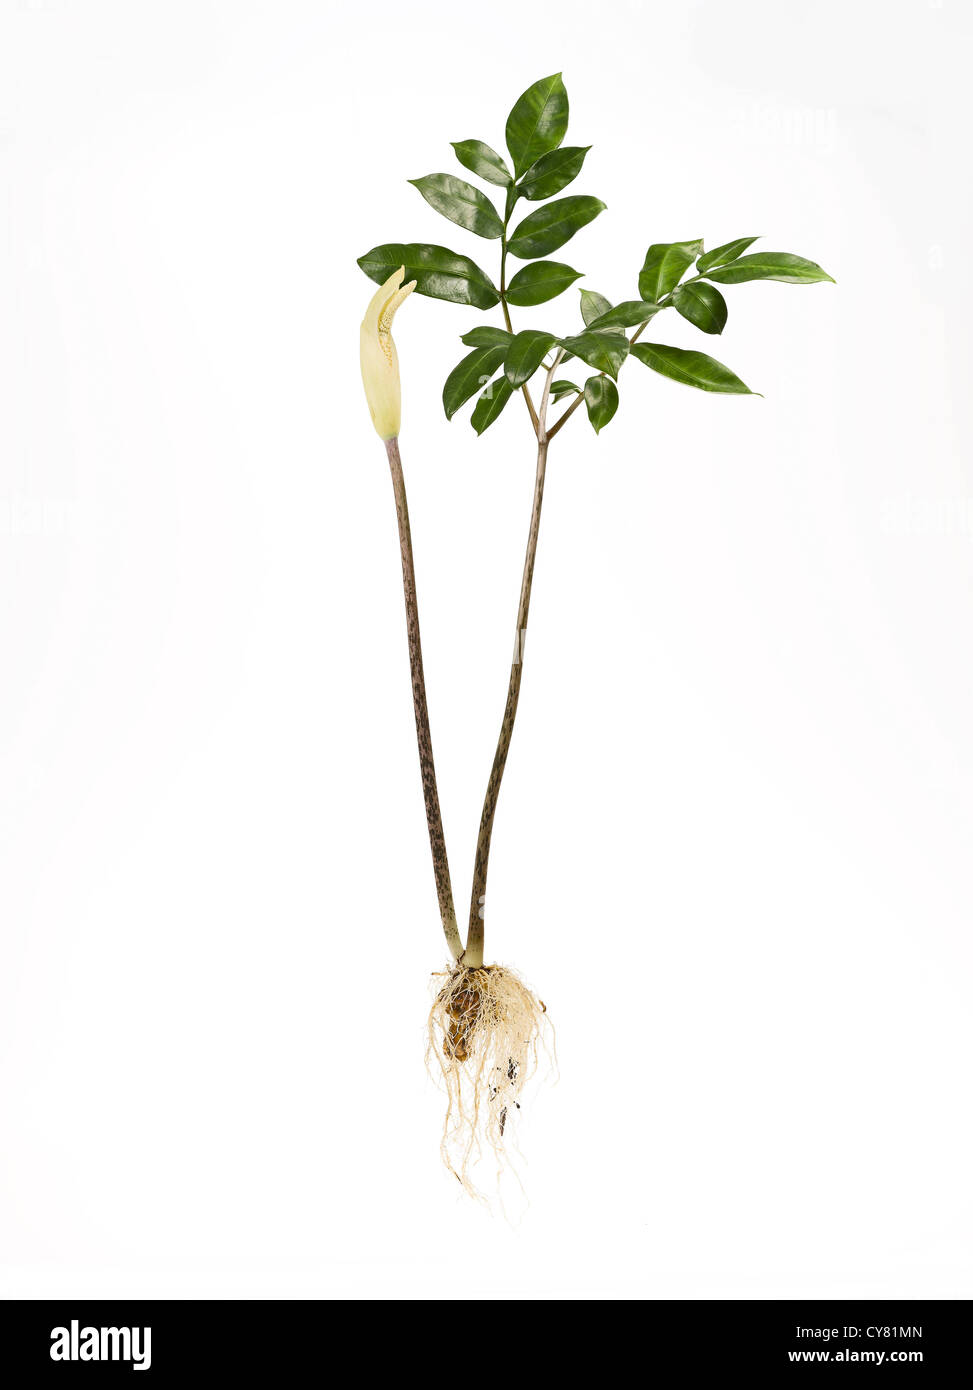 Konjak Plant With Root and Leaves - Stock Image